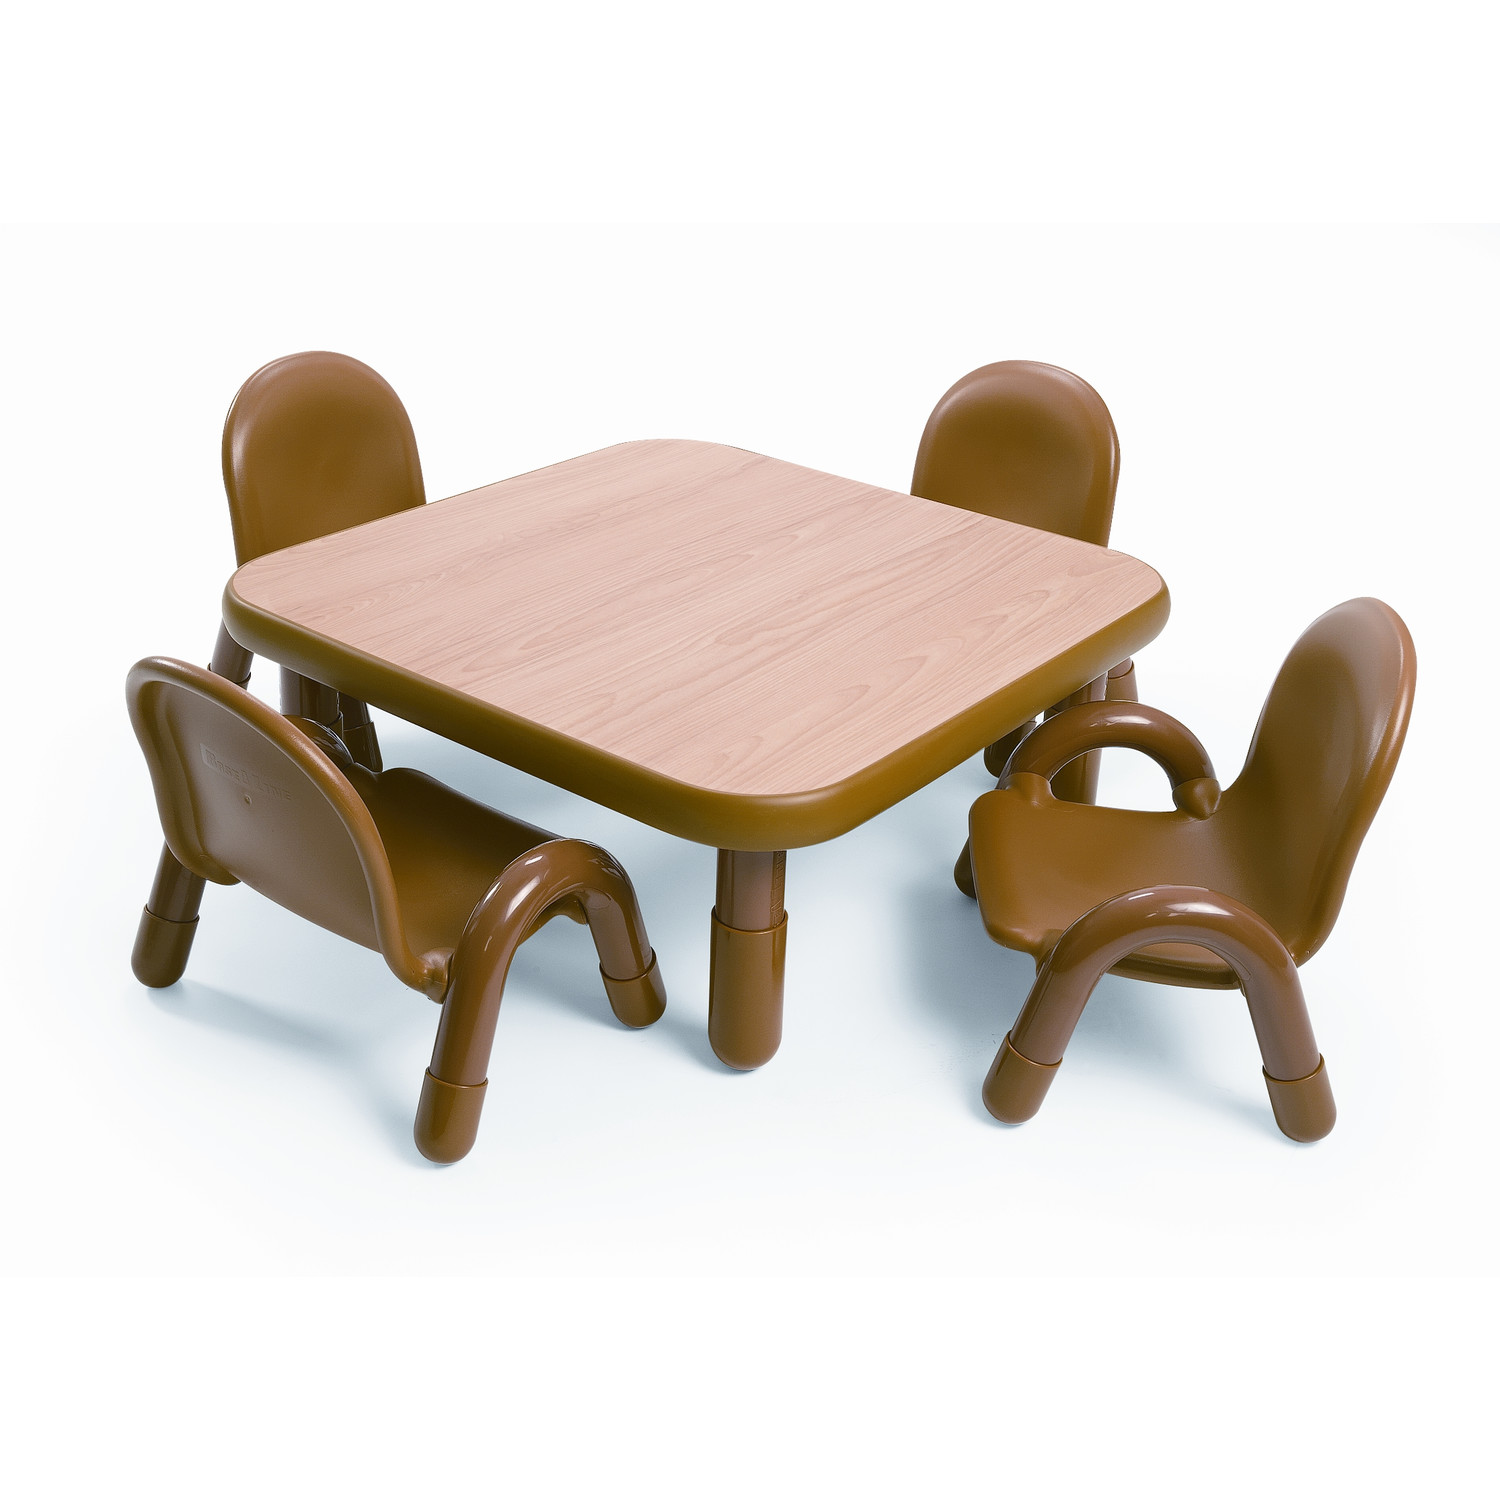 Simple and minimalist table and chair for toddlers homesfeed for Table and chair set